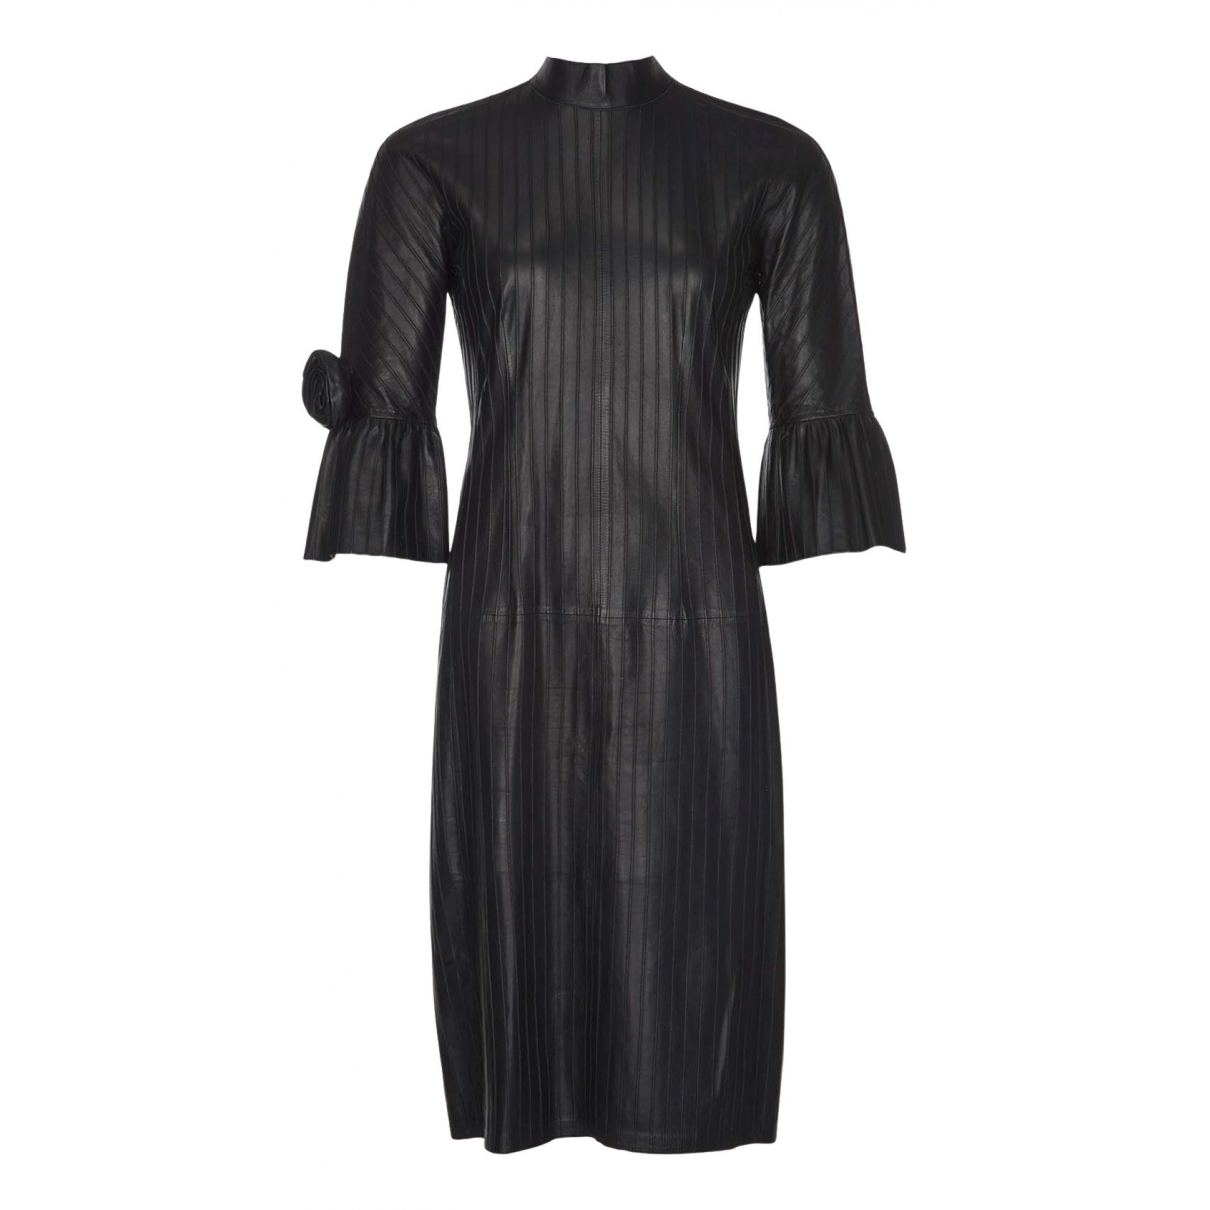 Gucci N Black Leather dress for Women 10 UK